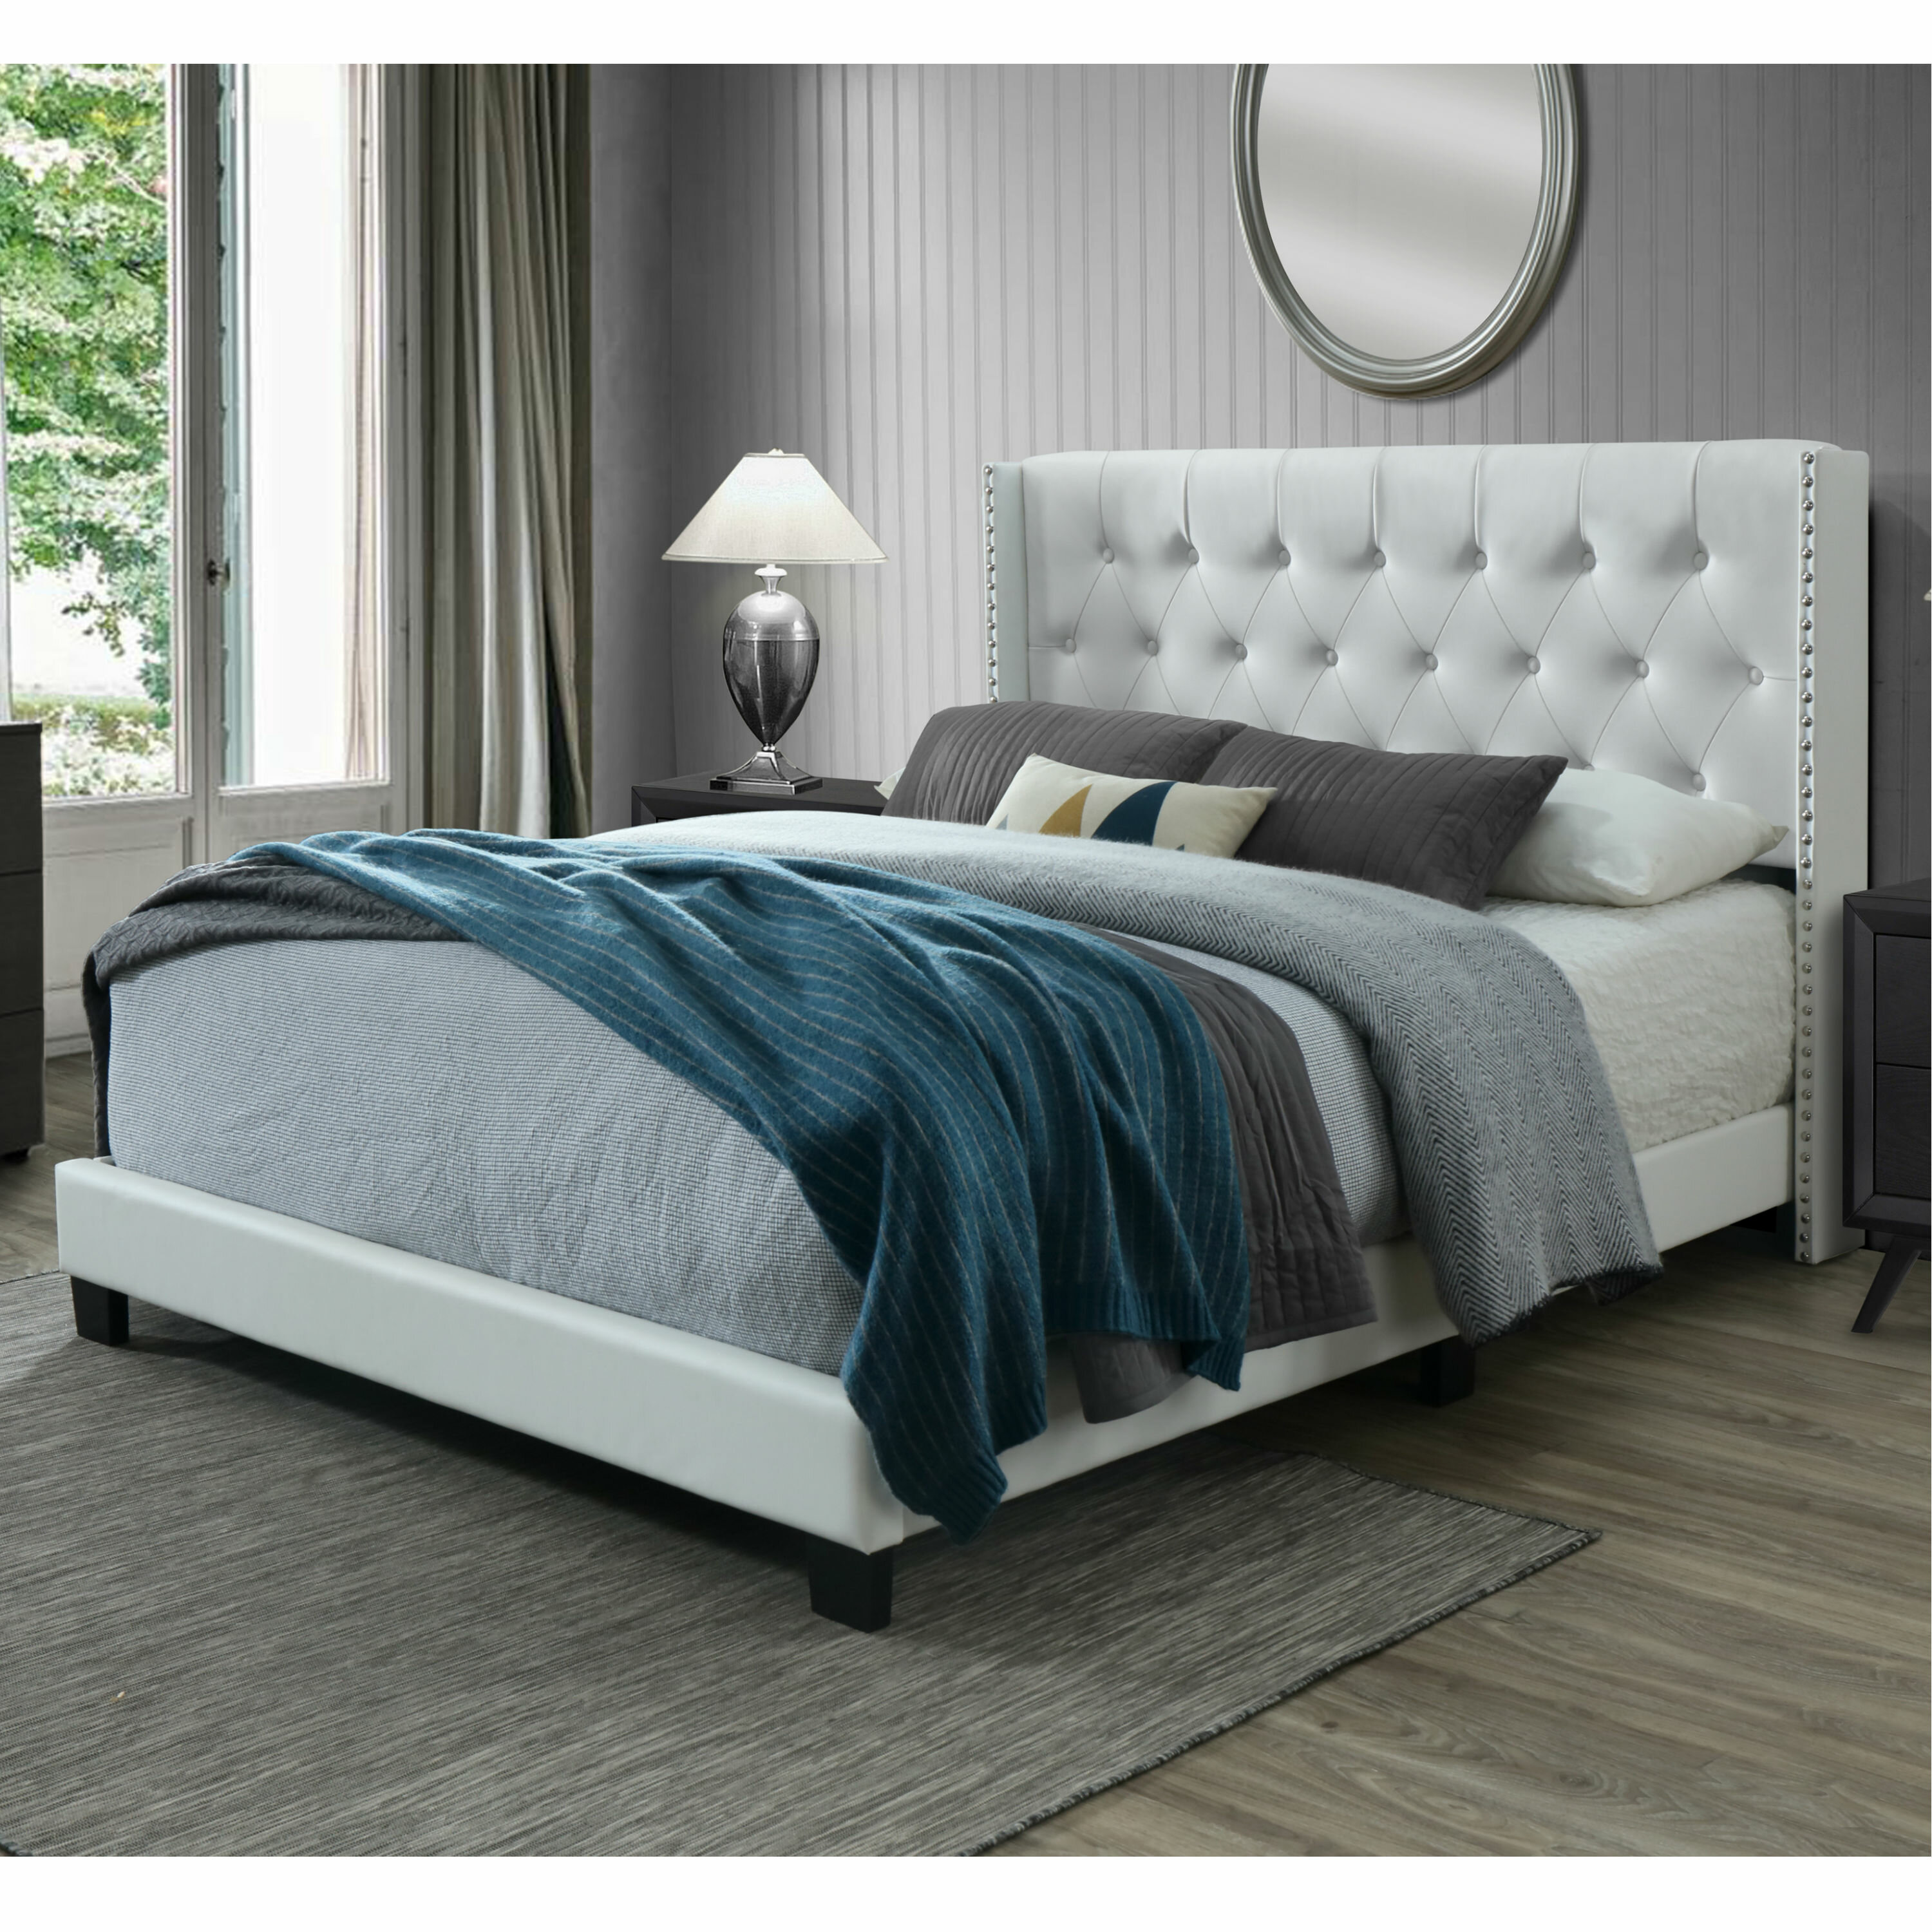 Picture of: Willa Arlo Interiors Nadine Queen Tufted Upholstered Low Profile Standard Bed Reviews